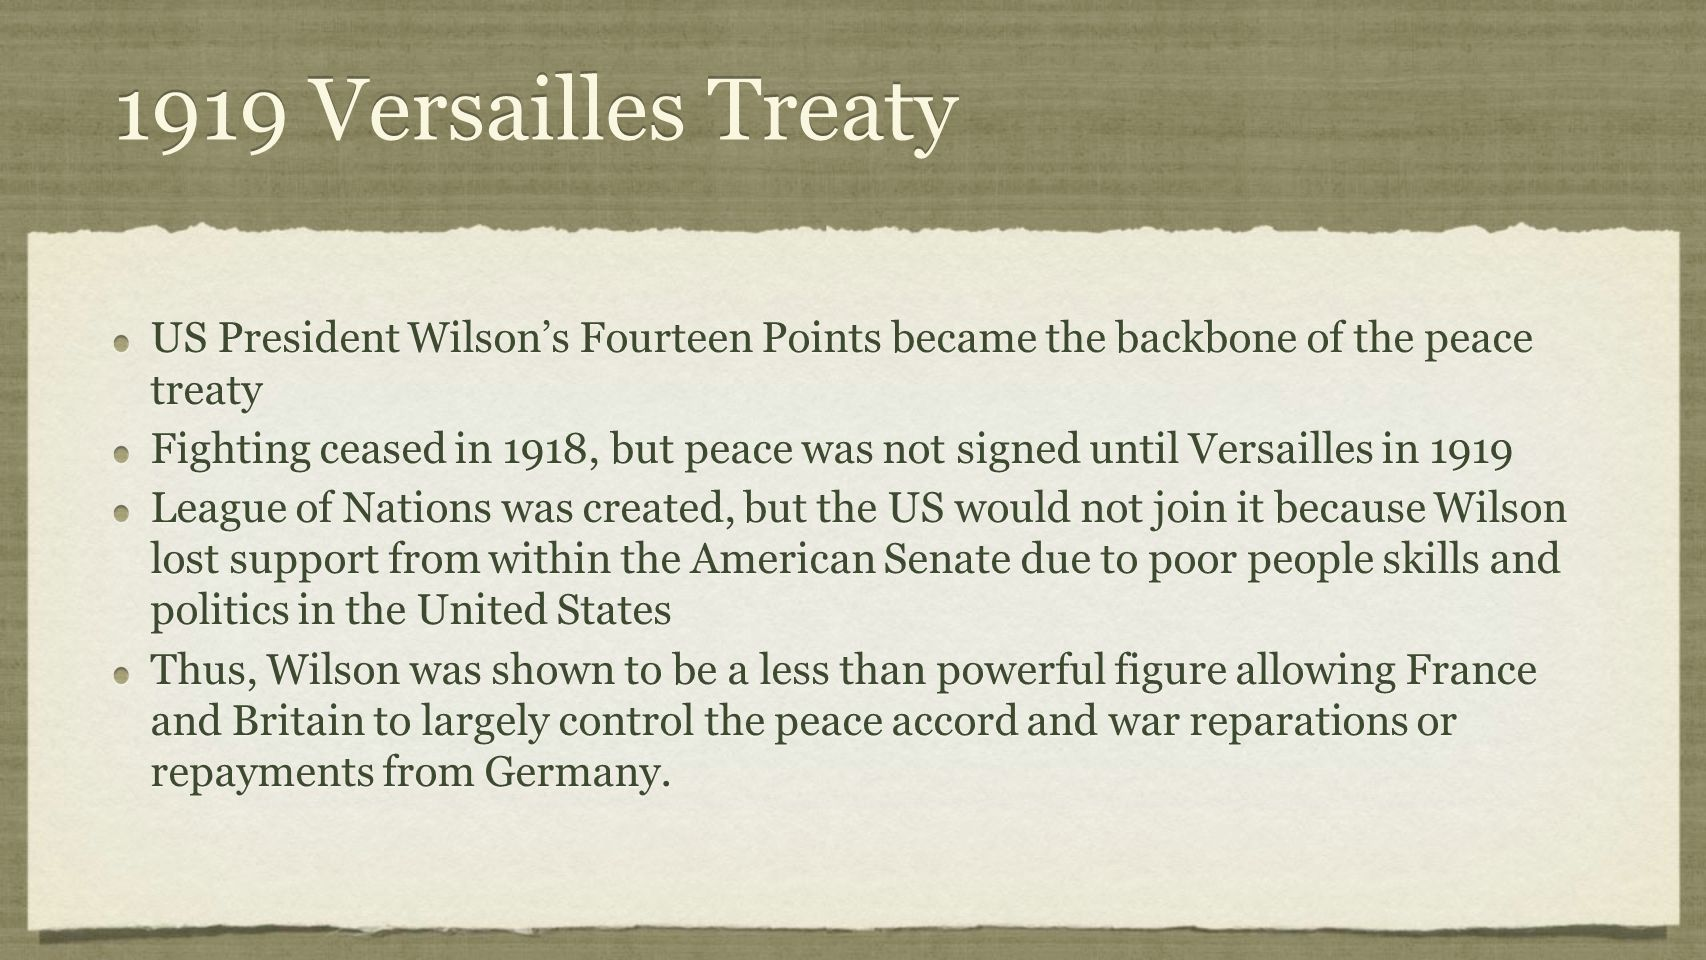 1919 Versailles Treaty US President Wilson's Fourteen Points became the backbone of the peace treaty.